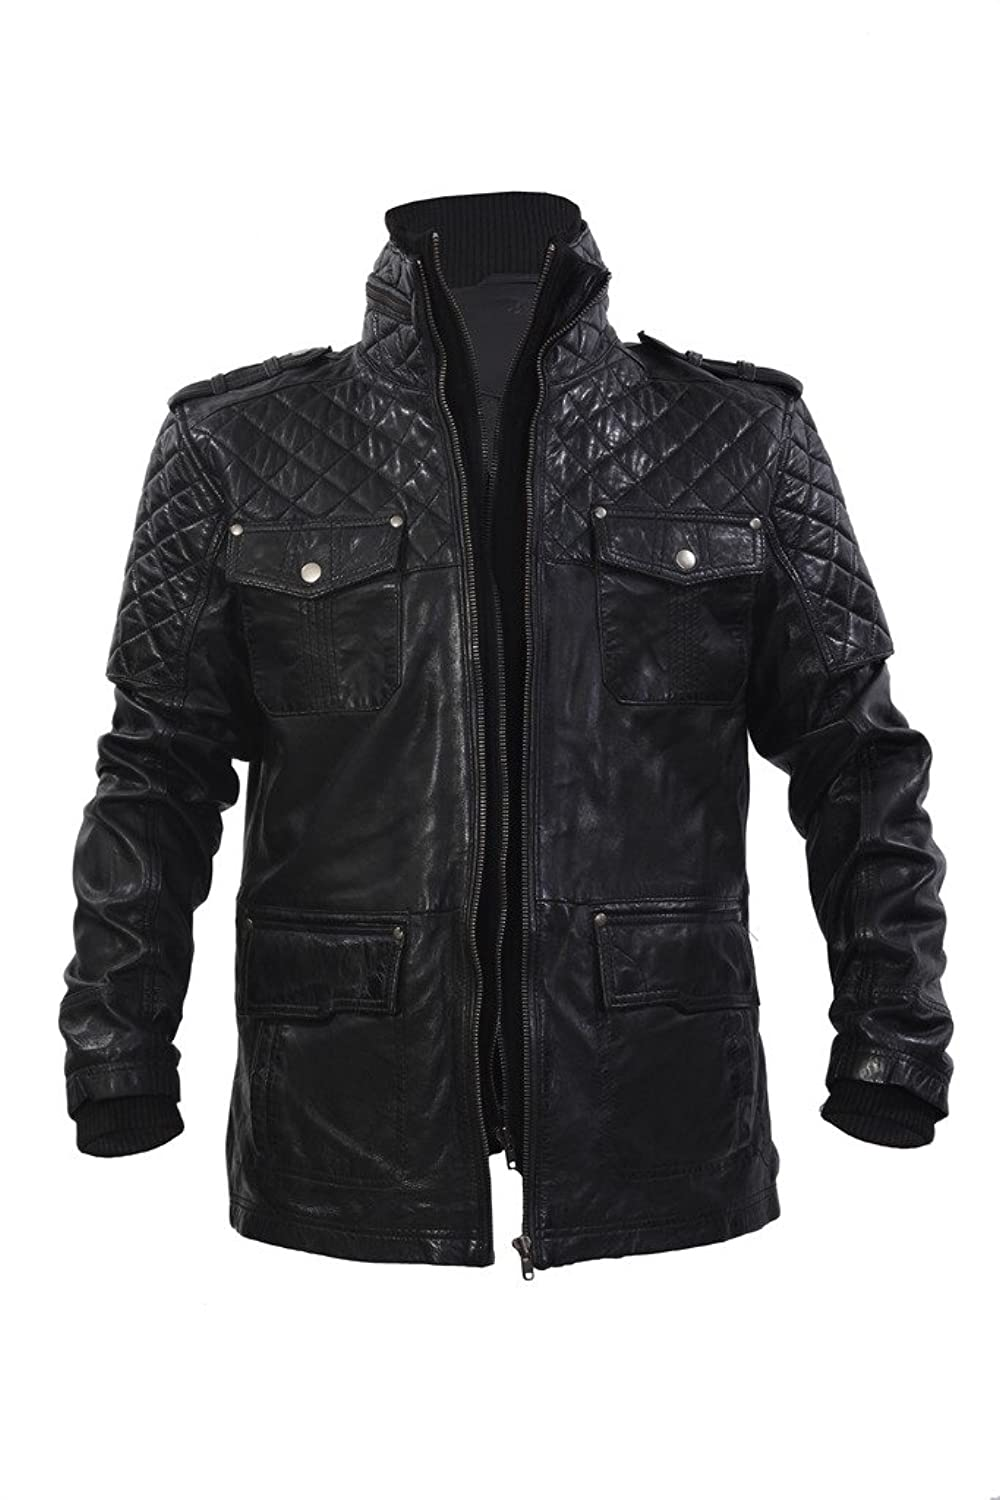 Men's Casual 100% Sheepskin Black Nappa Leather Short Quilted Slim Fit Jacket